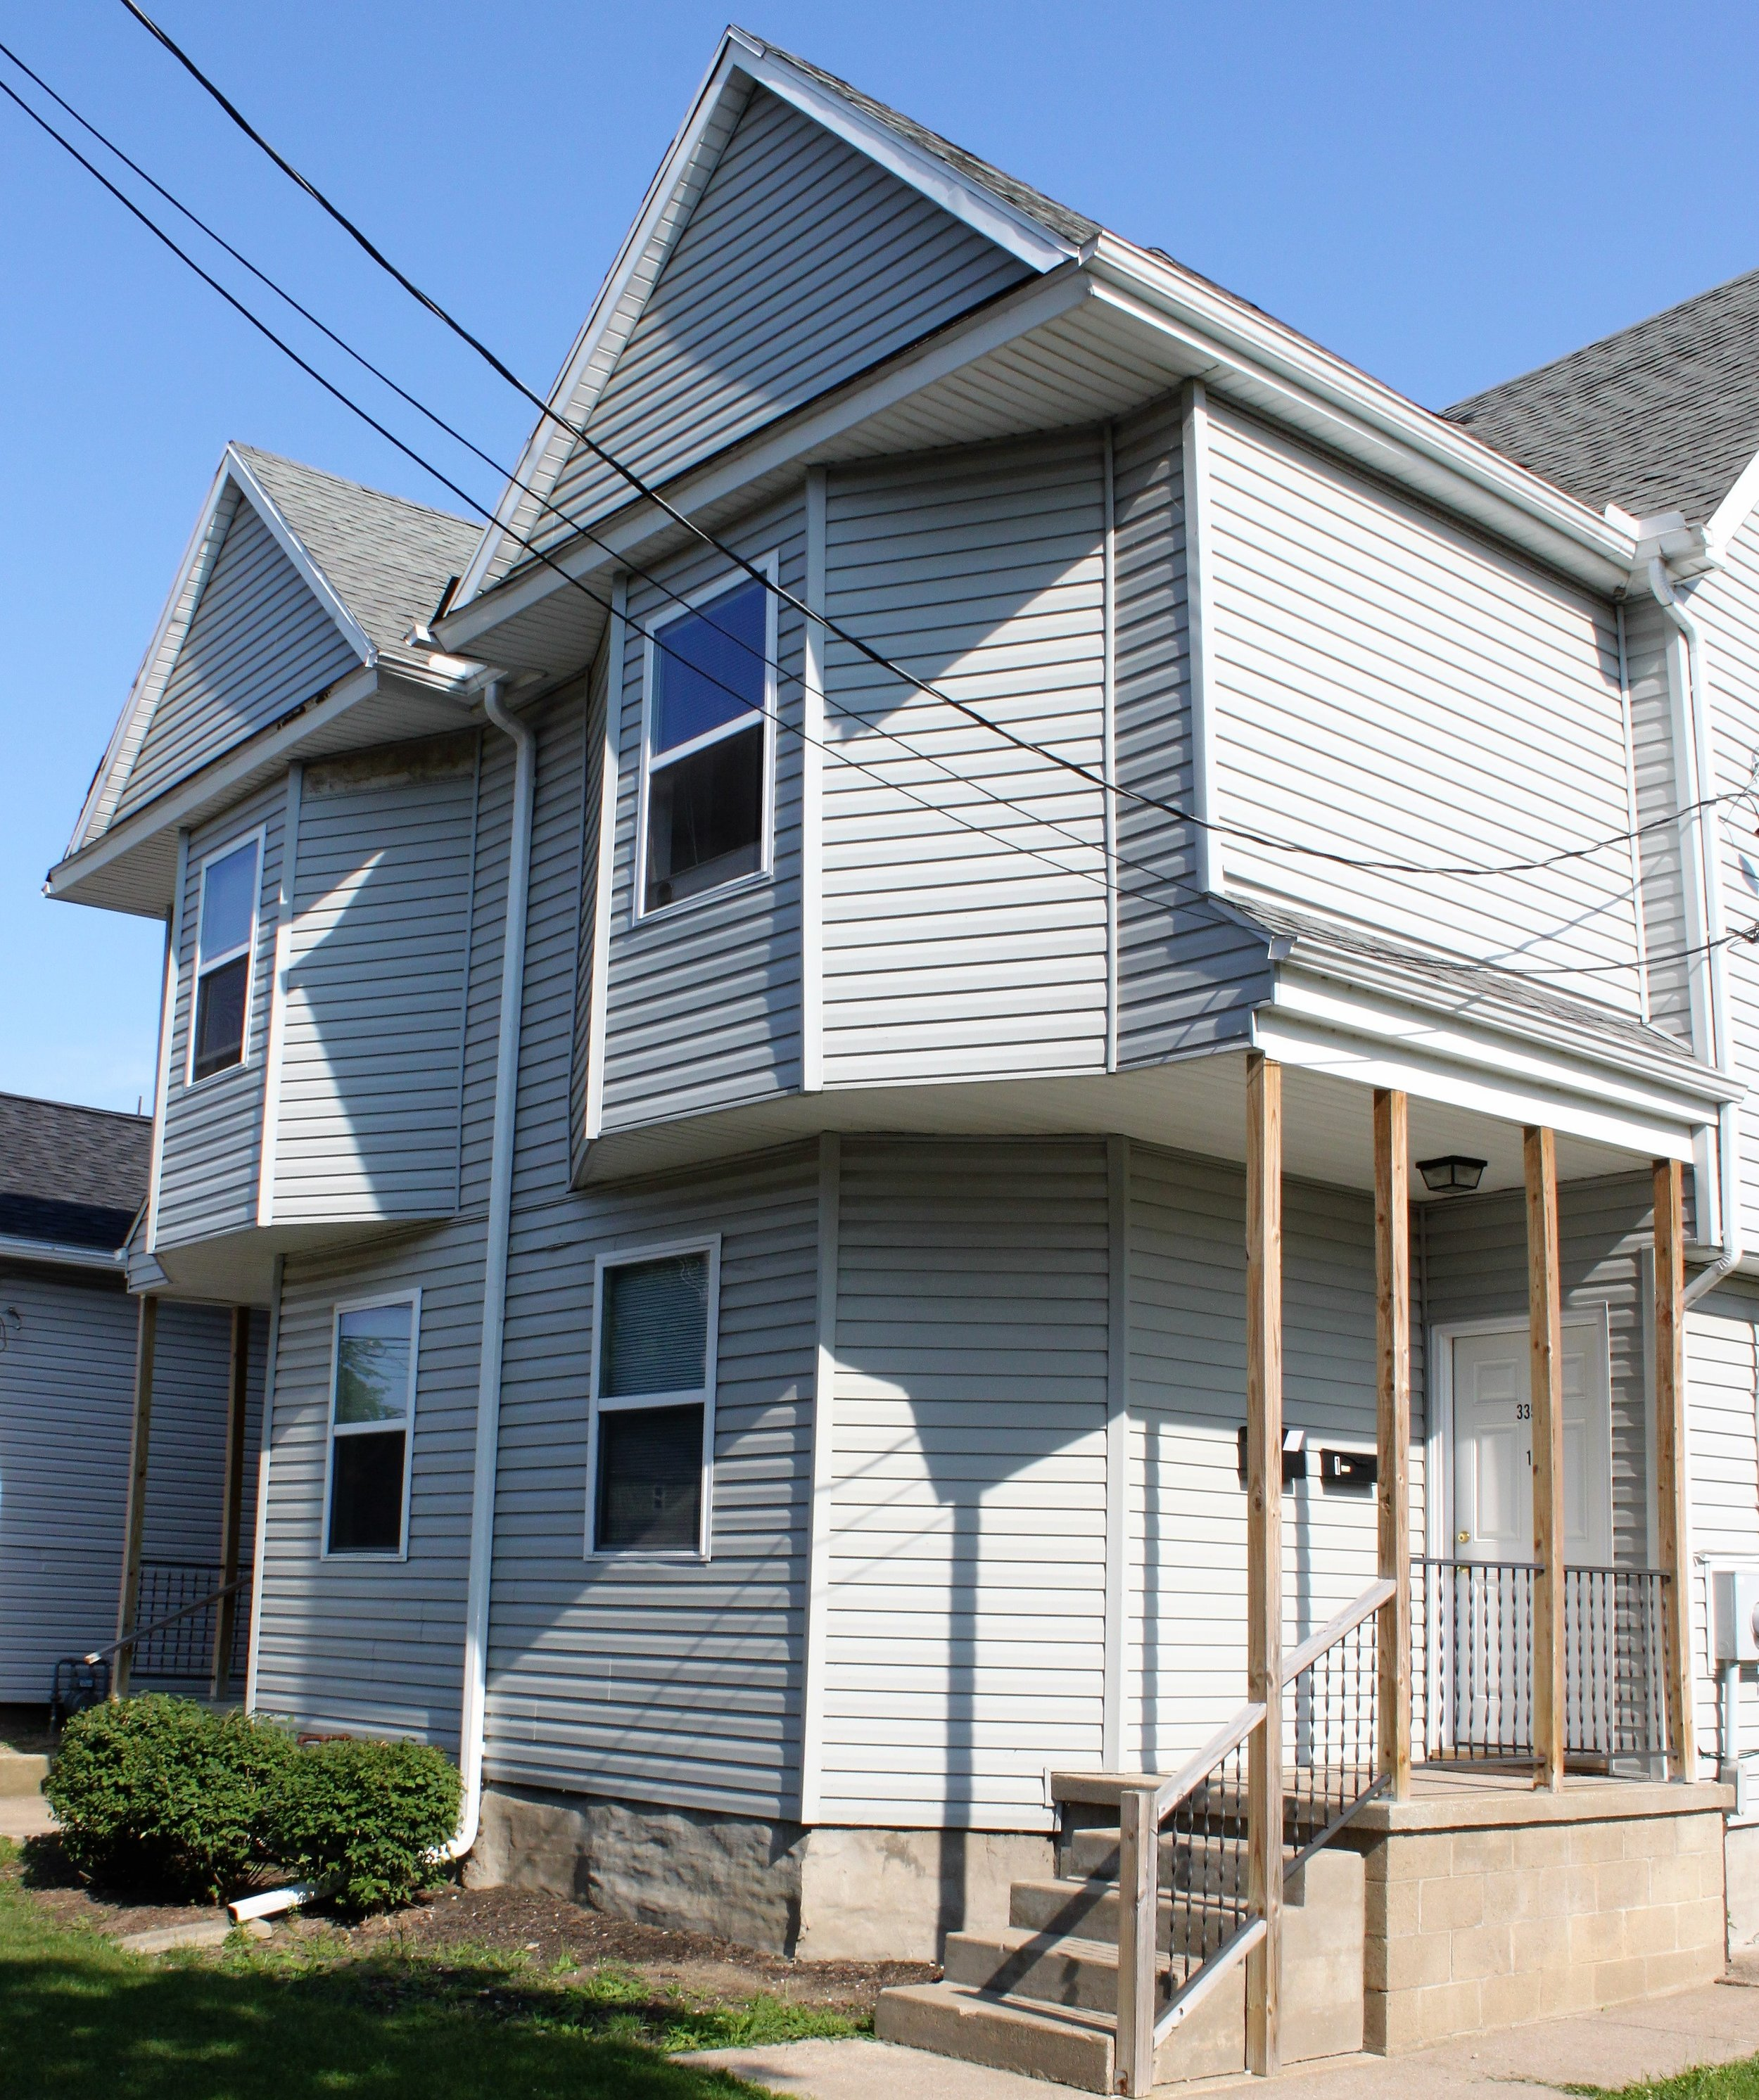 Charles Commons - 333 West 4th St. Erie Pa 16507Four two bedroom newly remodeled units. A stone's throw from the Gannon athletic fields. This awesome building is energy efficient, has off street parking, a large yard, and onsite laundry.